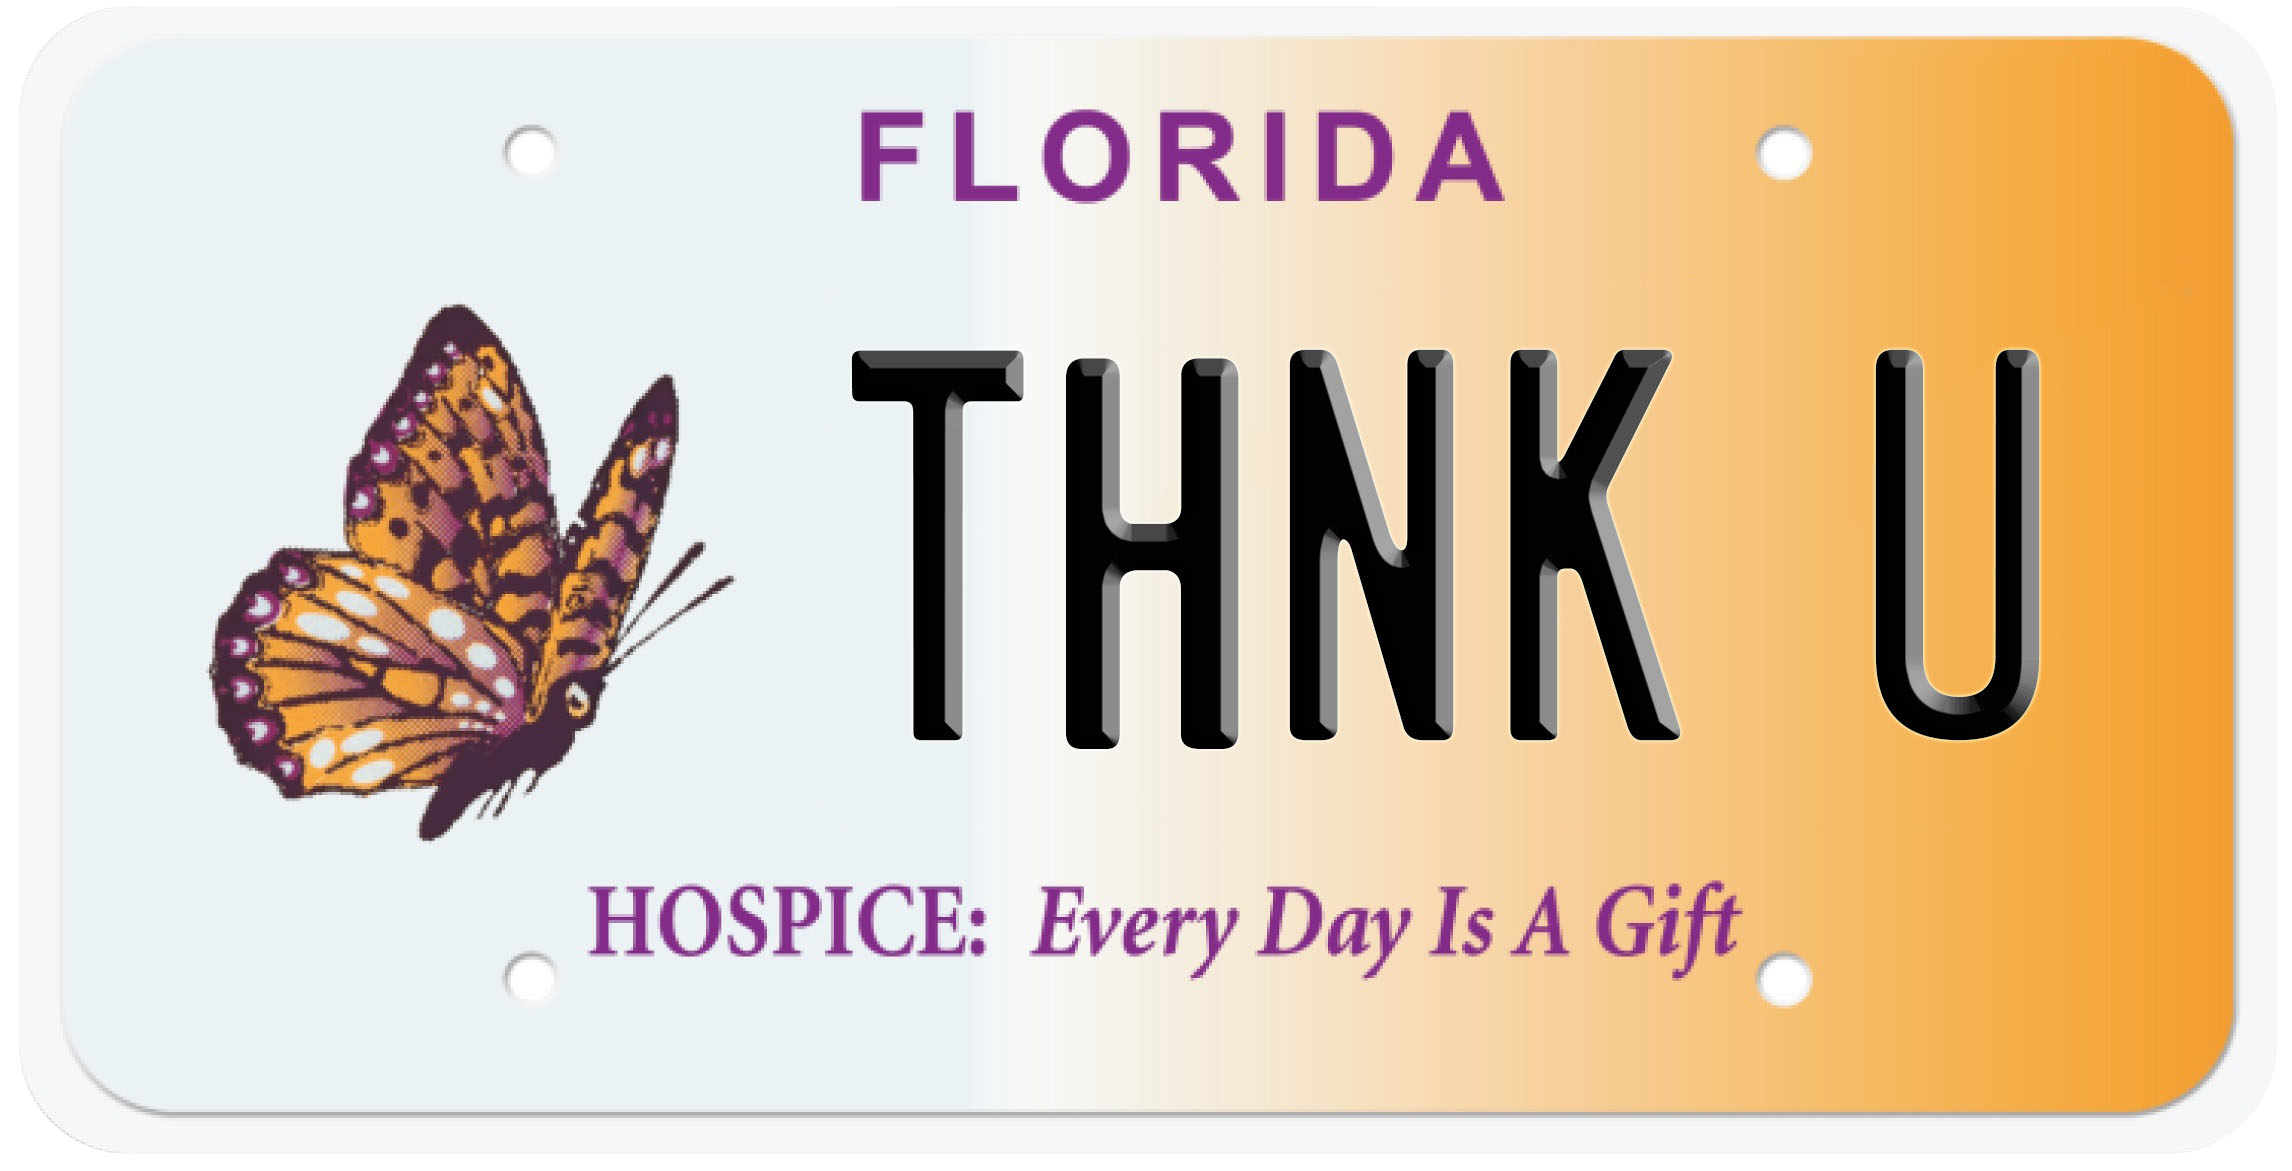 Hospice Plate Image